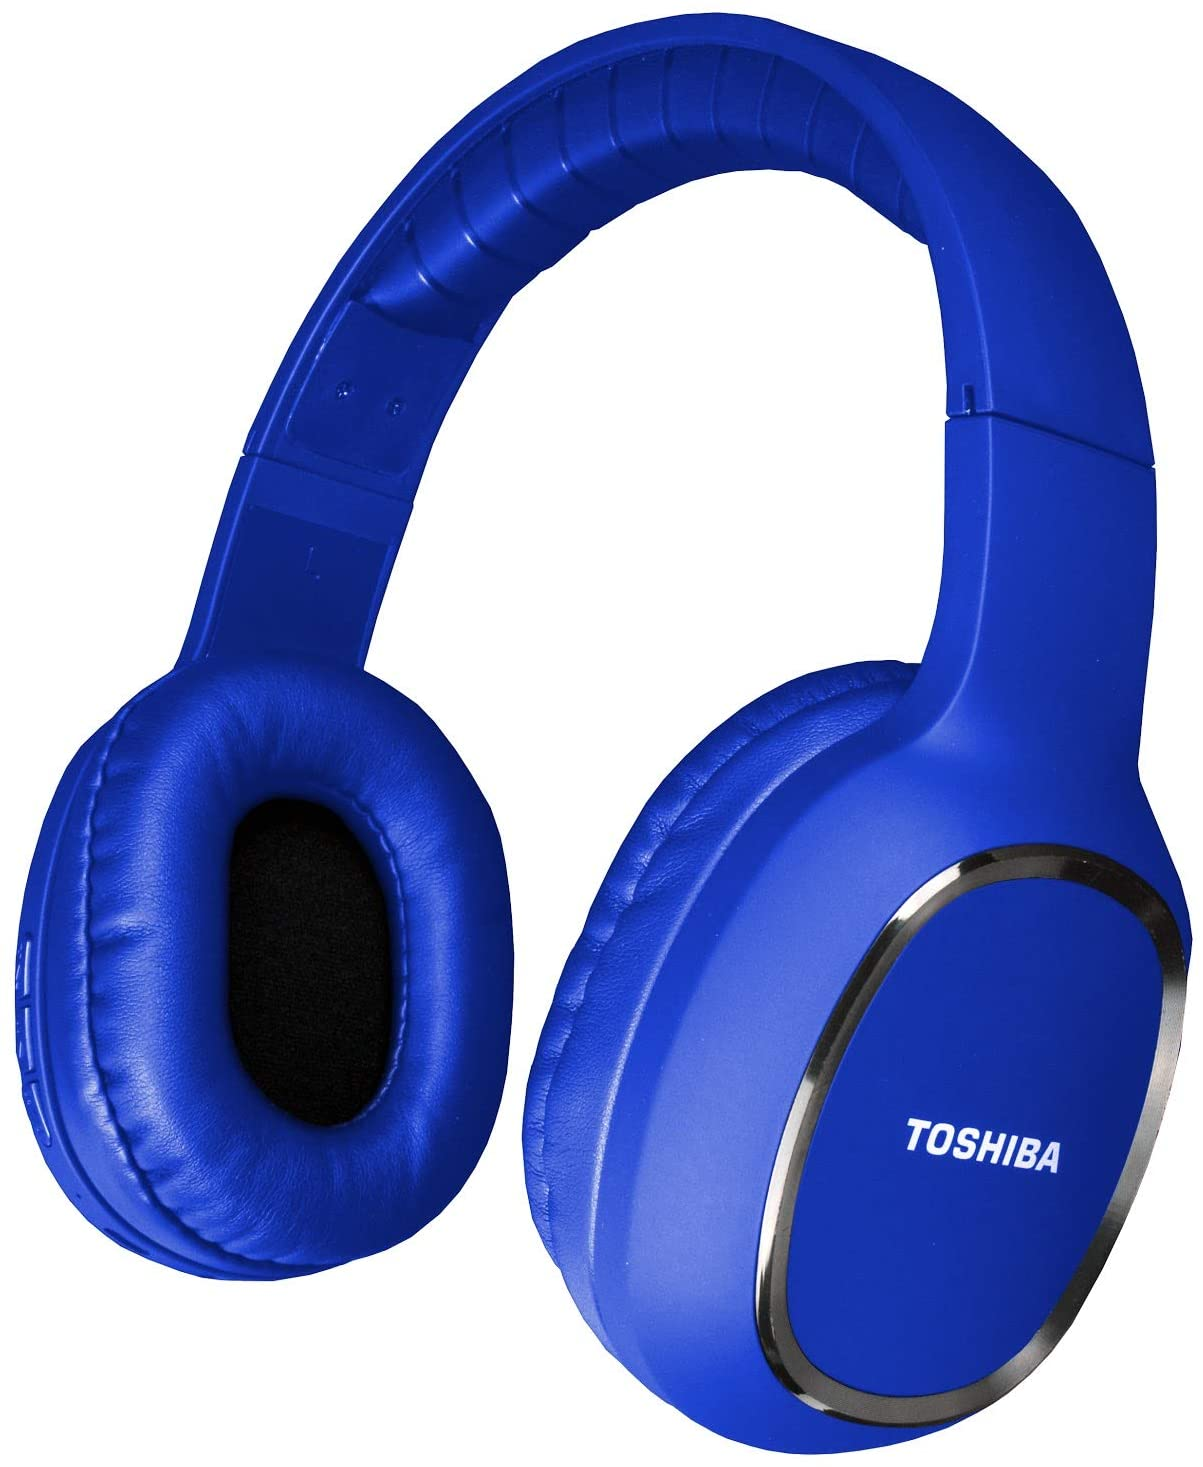 Toshiba Wireless Over-Ear Bluetooth Headphones (RZE-BT160HK)